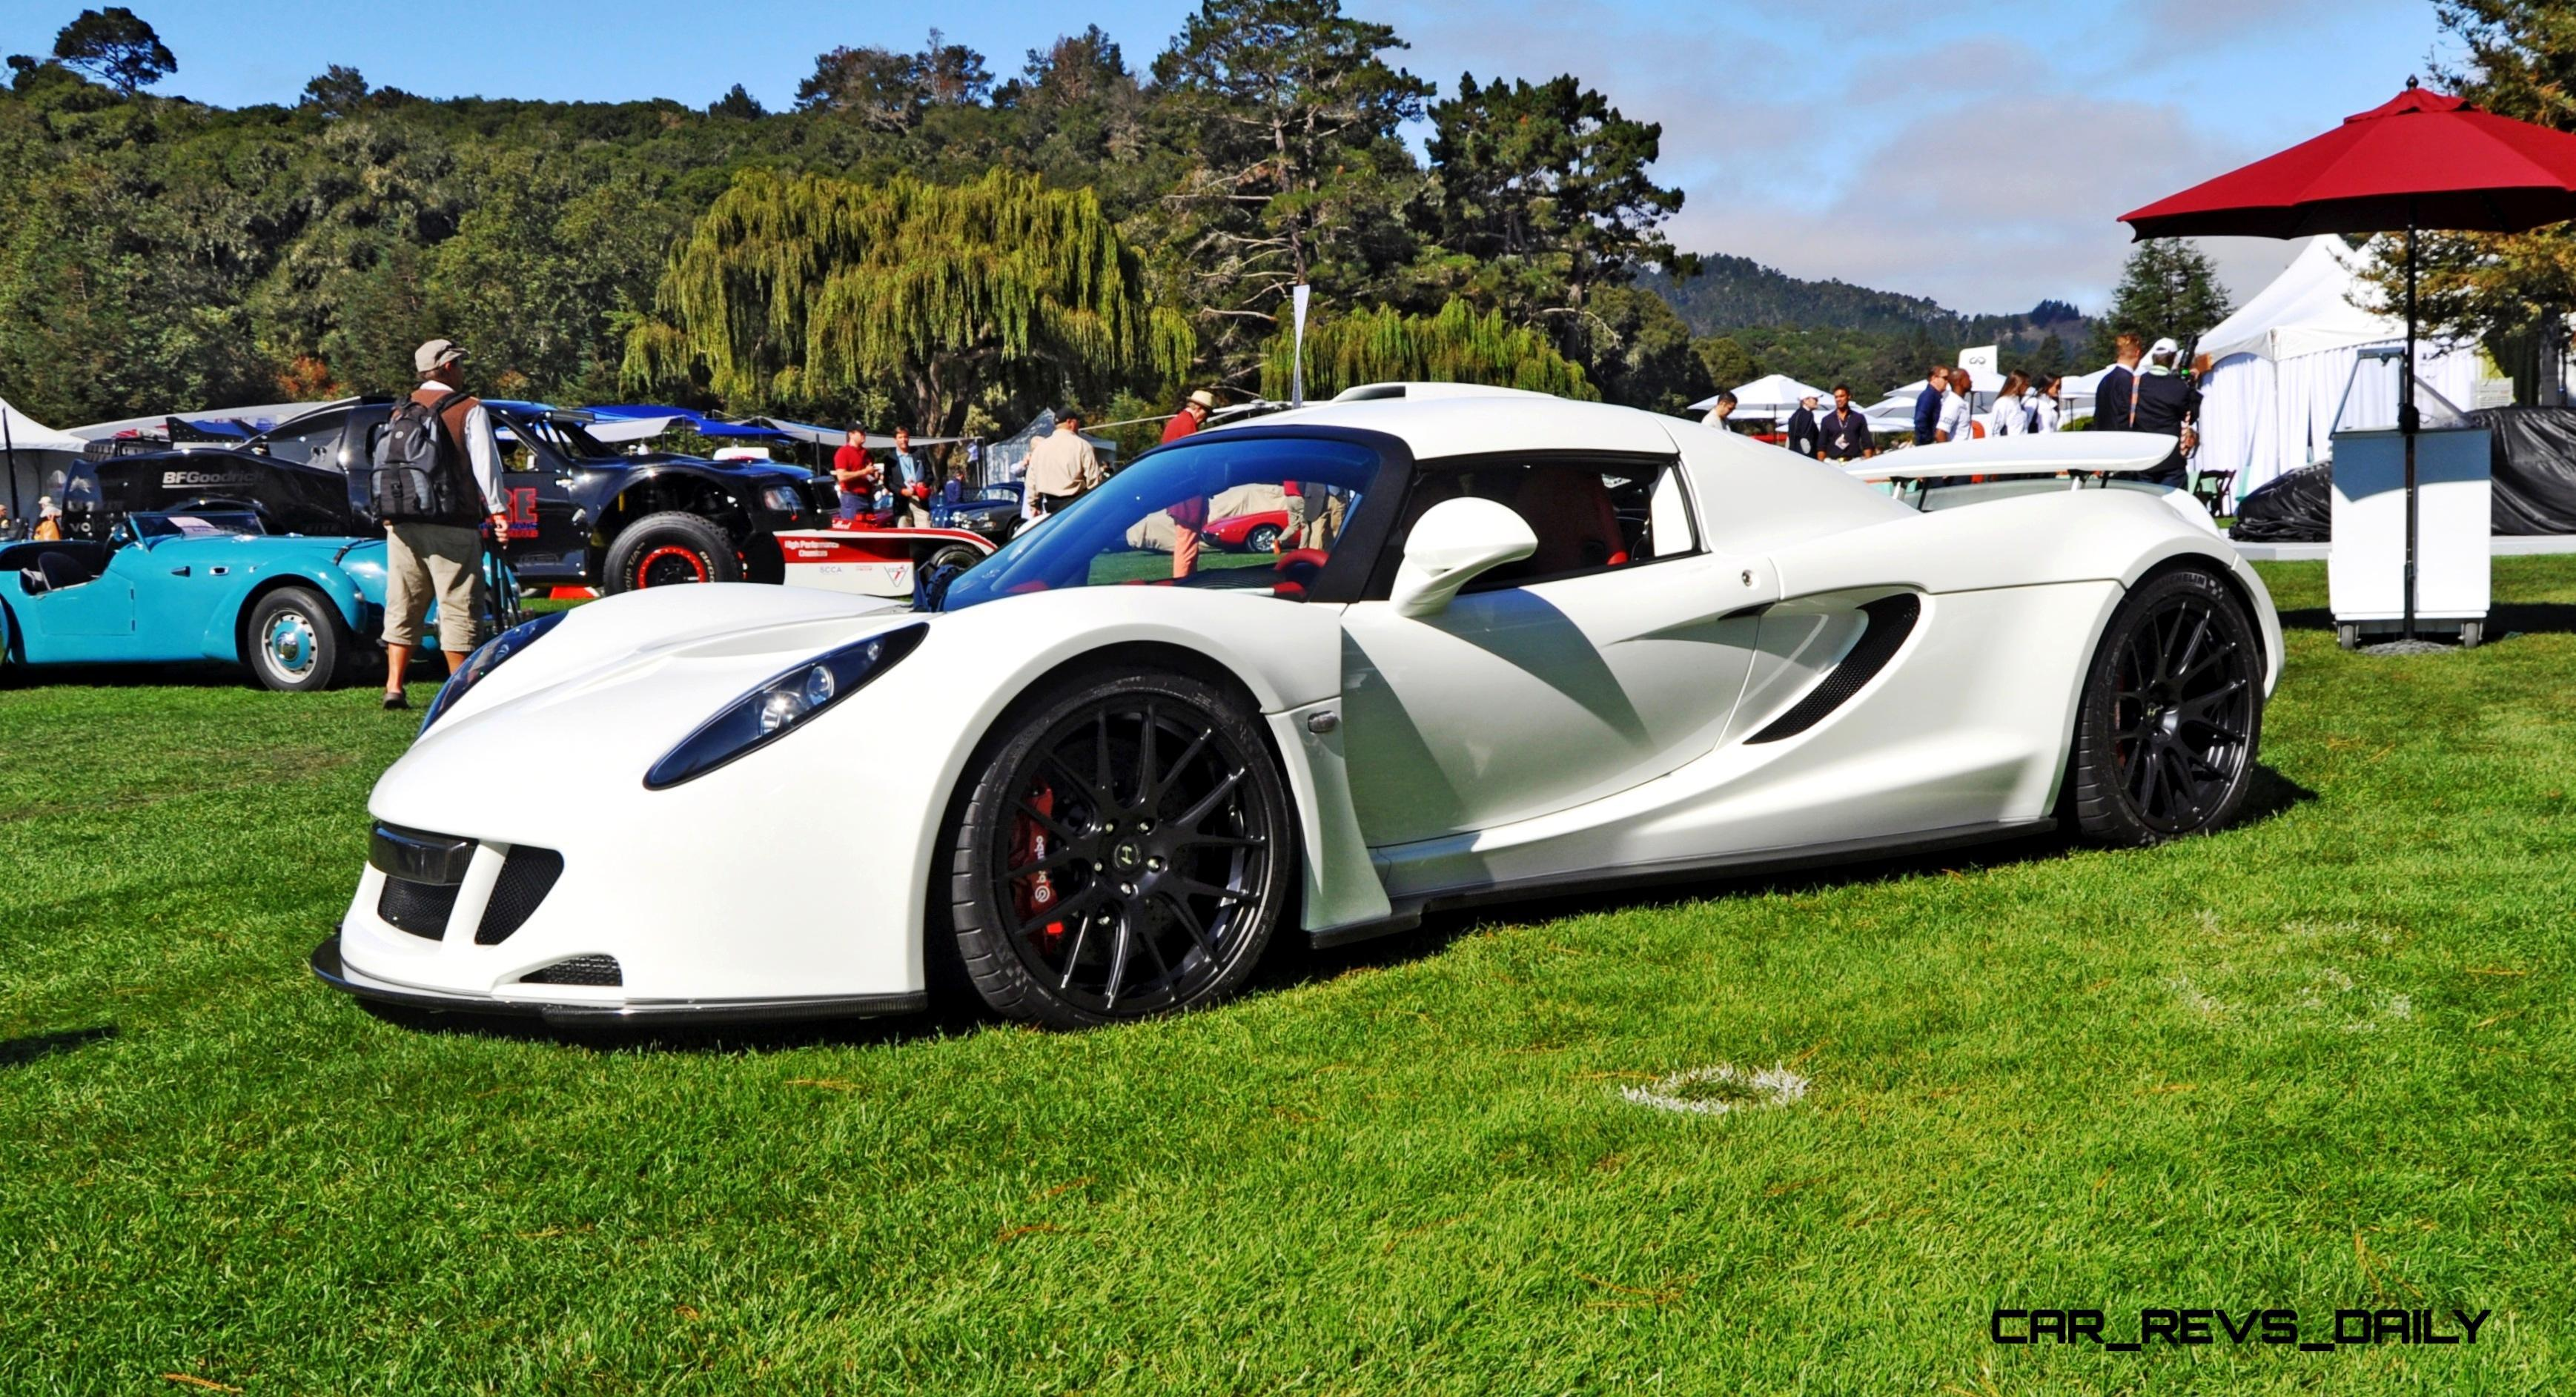 2015 hennessey venom gt worlds fastest edition in 69 all new photos from the quail 16. Black Bedroom Furniture Sets. Home Design Ideas